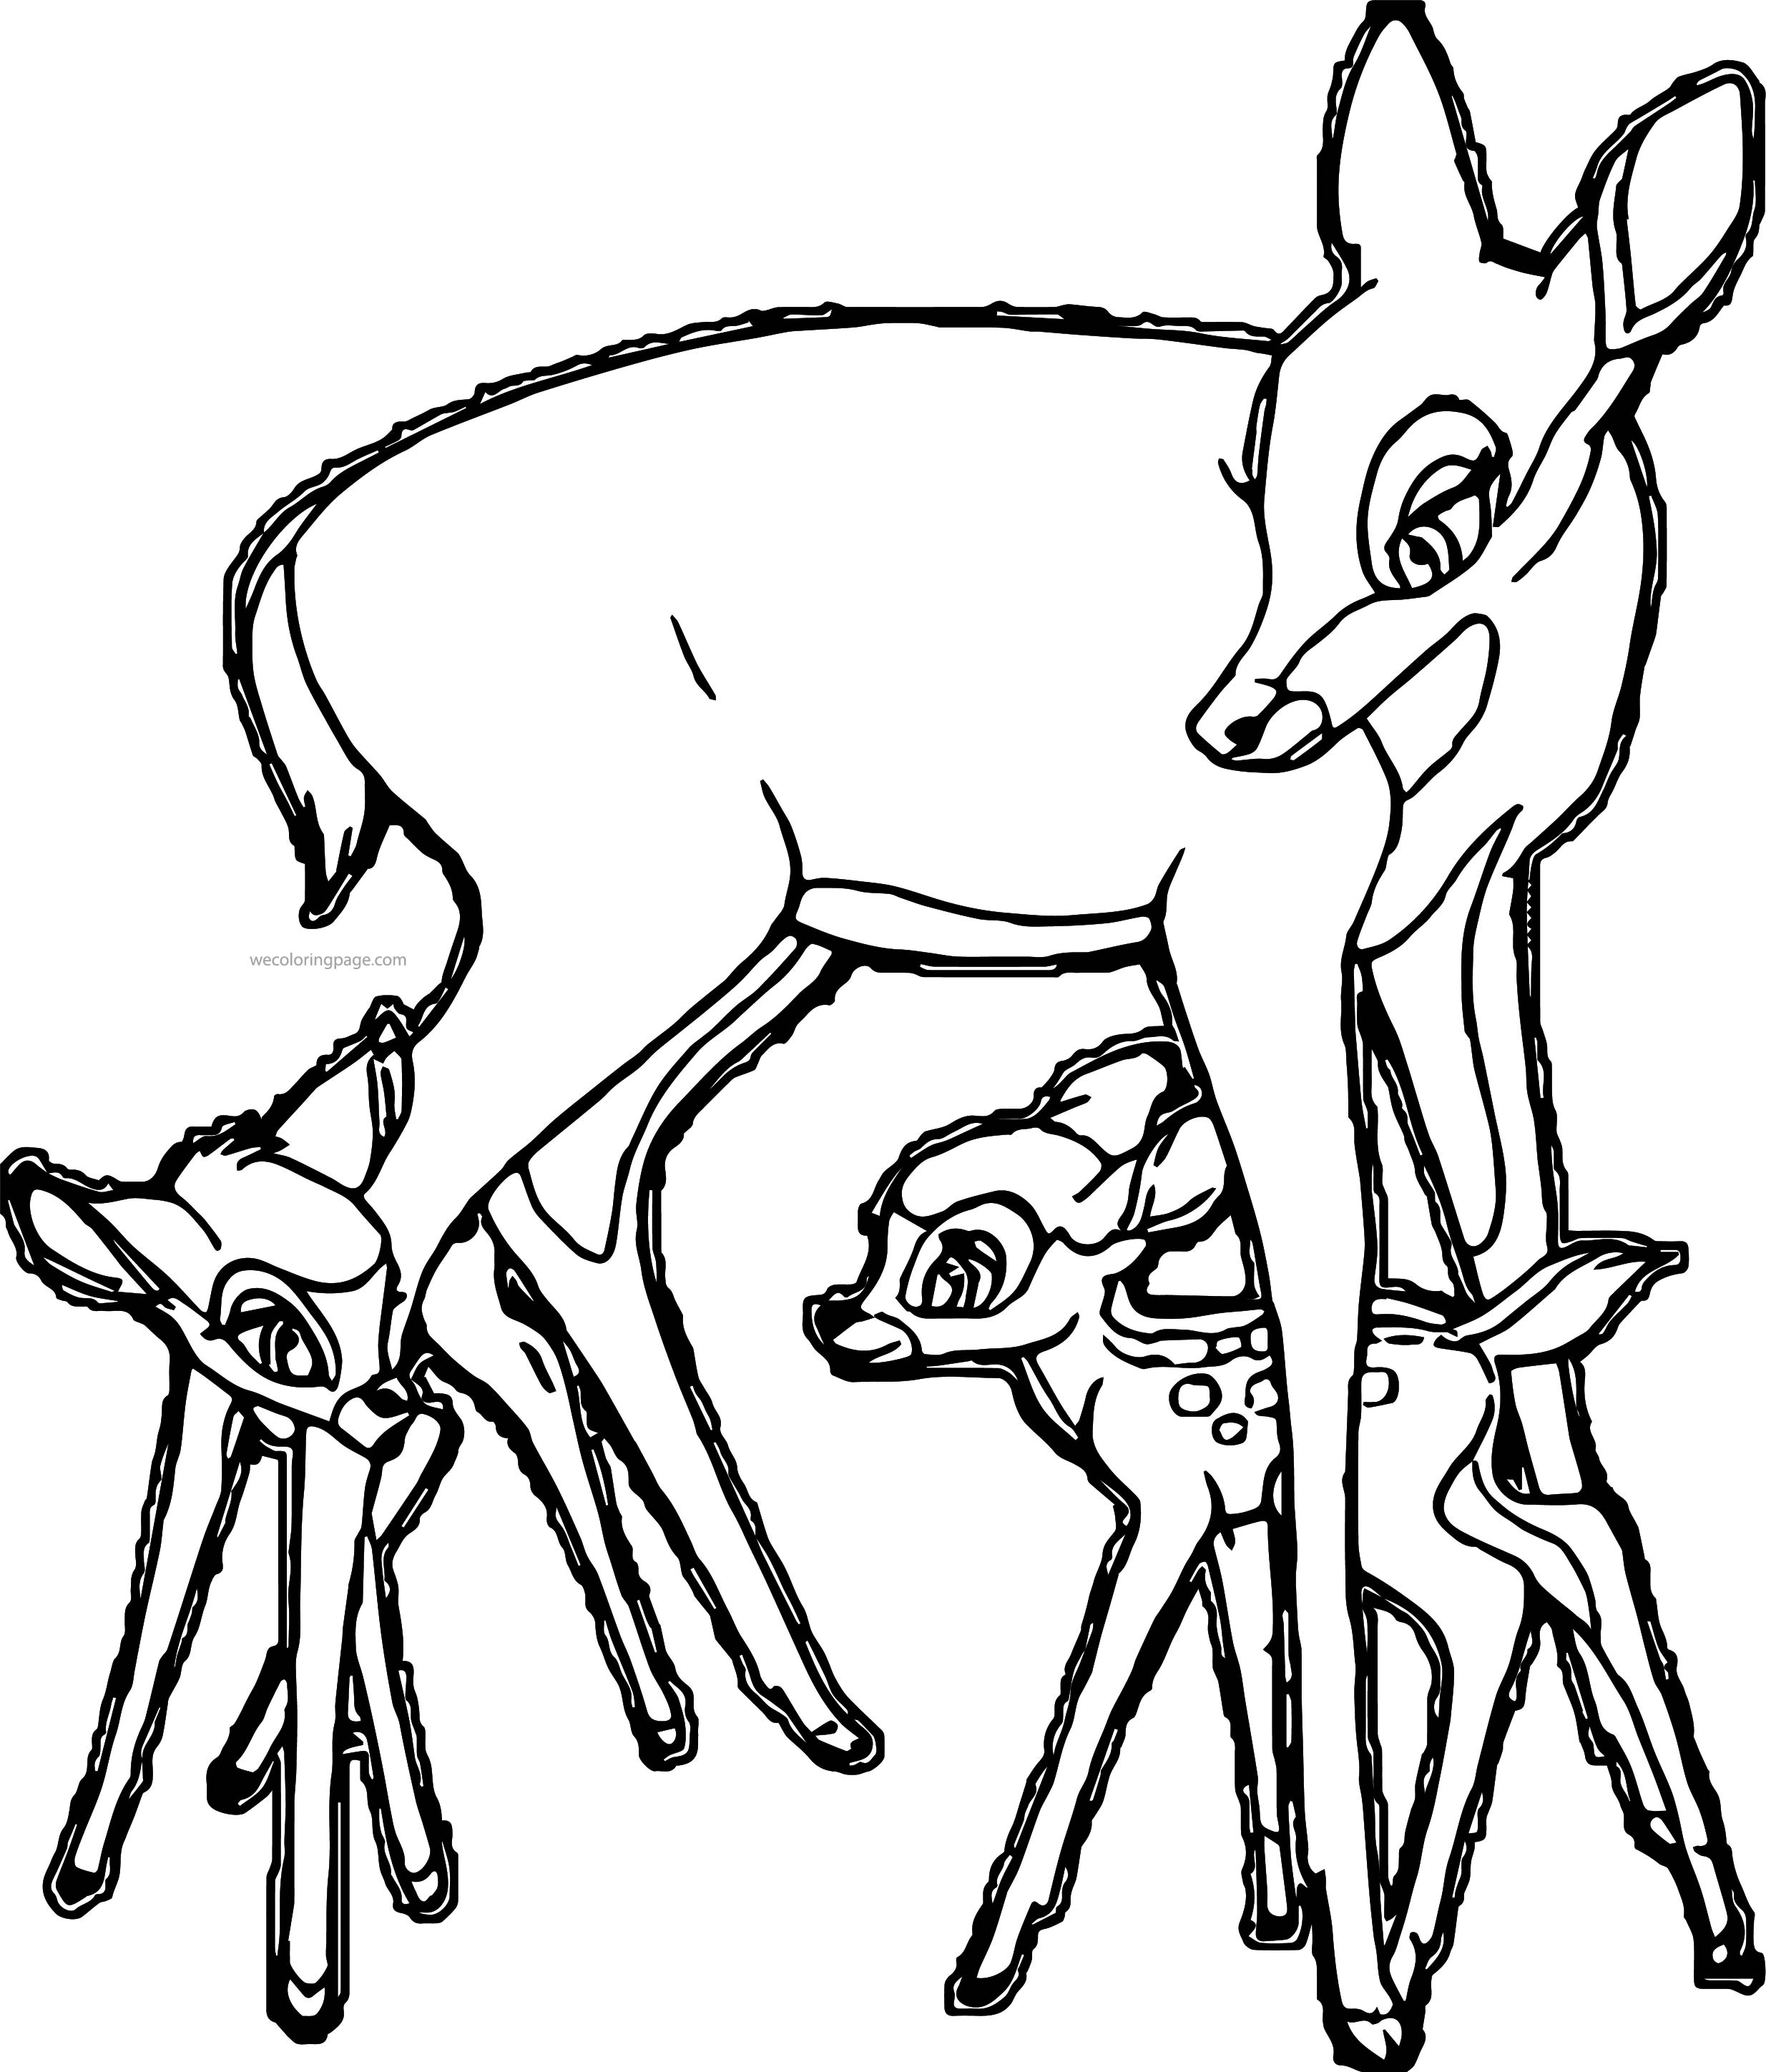 bambi mother child play coloring page wecoloringpage